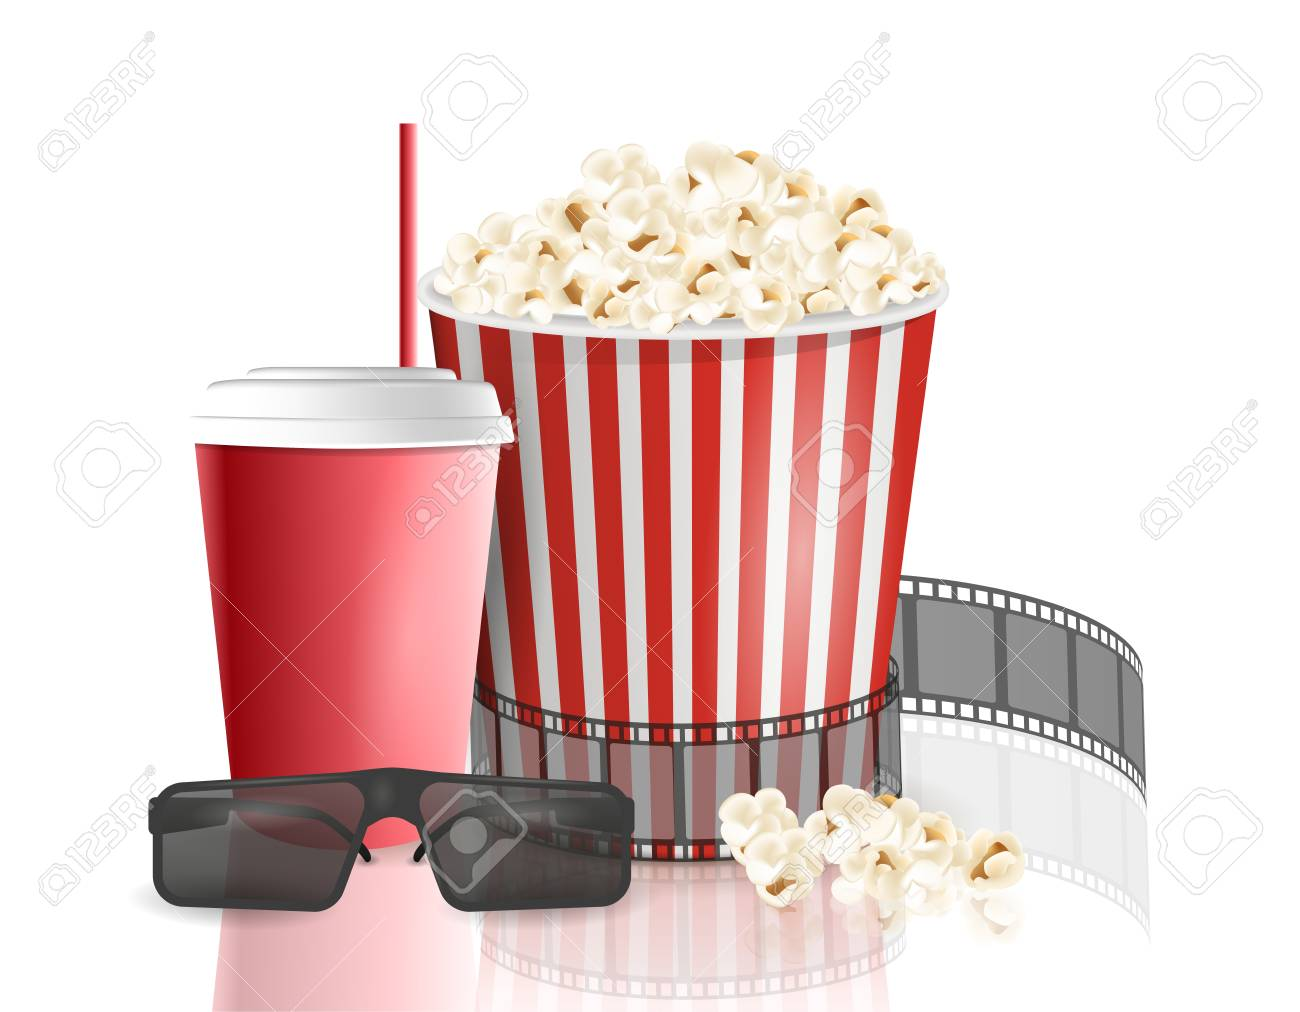 Movie Objects Popcorn Soda Takeaway 3d Cinema Glasses Cinema Royalty Free Cliparts Vectors And Stock Illustration Image 96981822